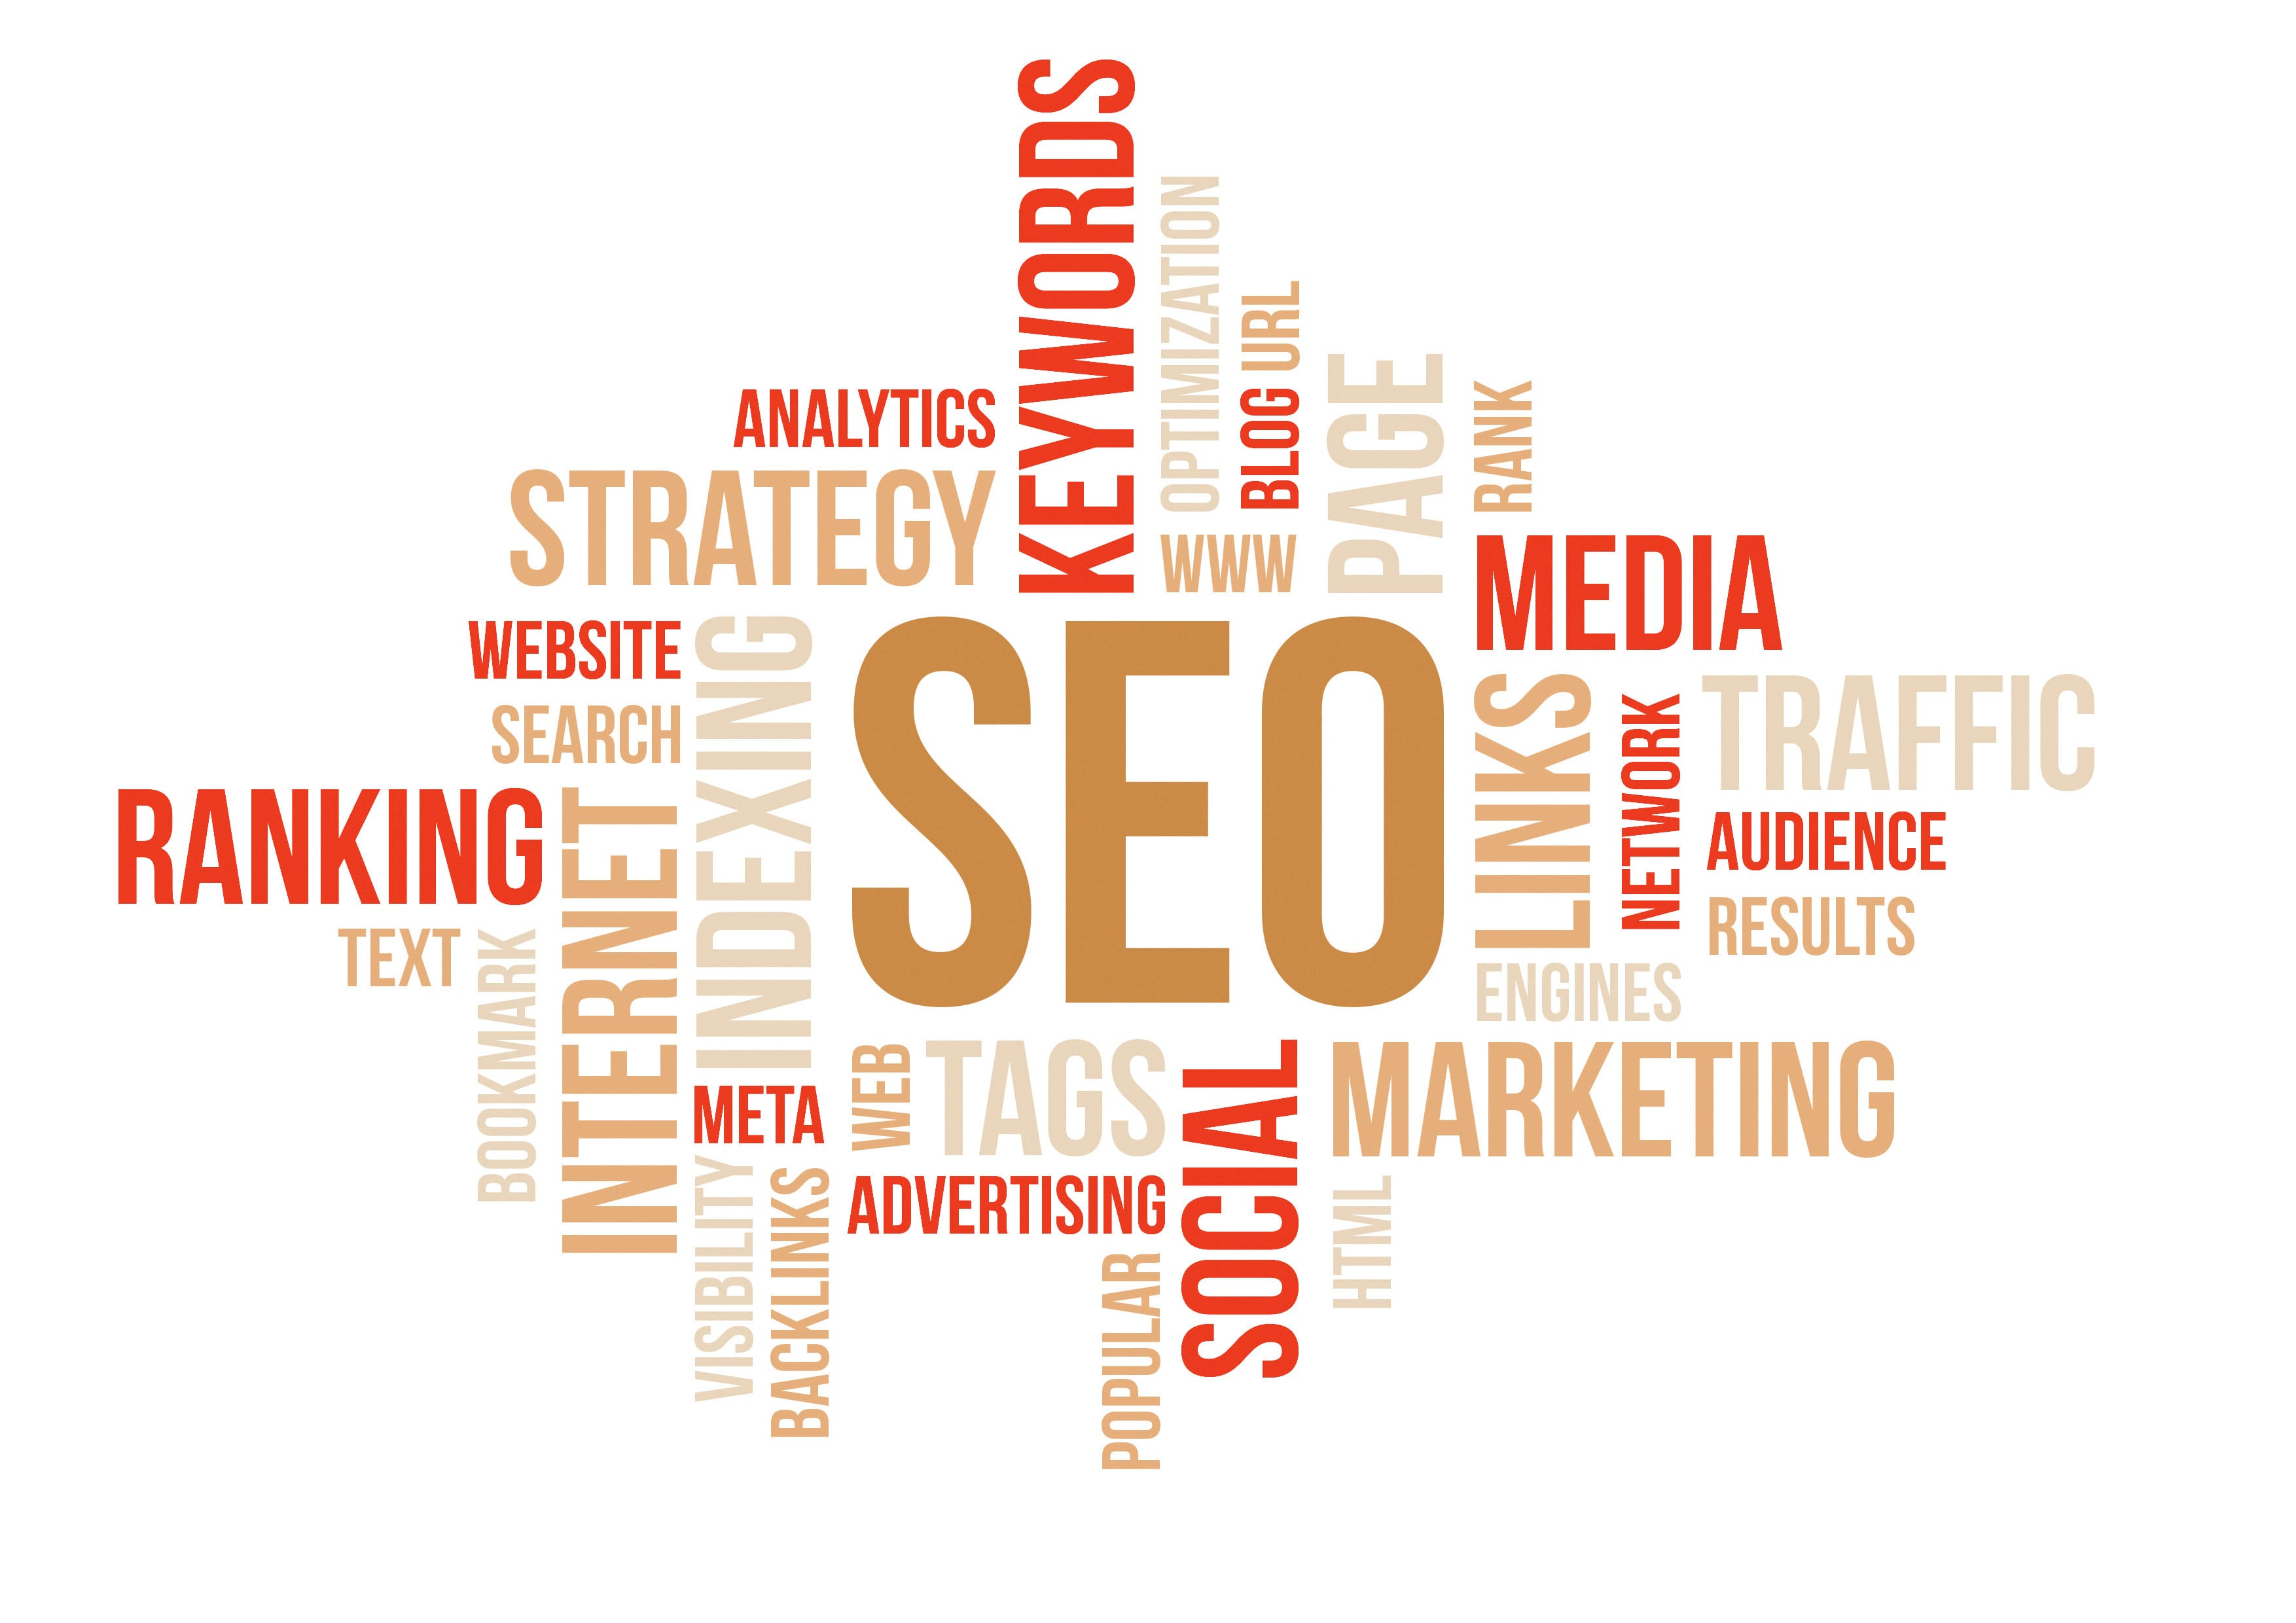 SEO Tips | SEO Tips For Real Estate Agents | Real Estate Marketing Tools | SEO Tips For Realtors